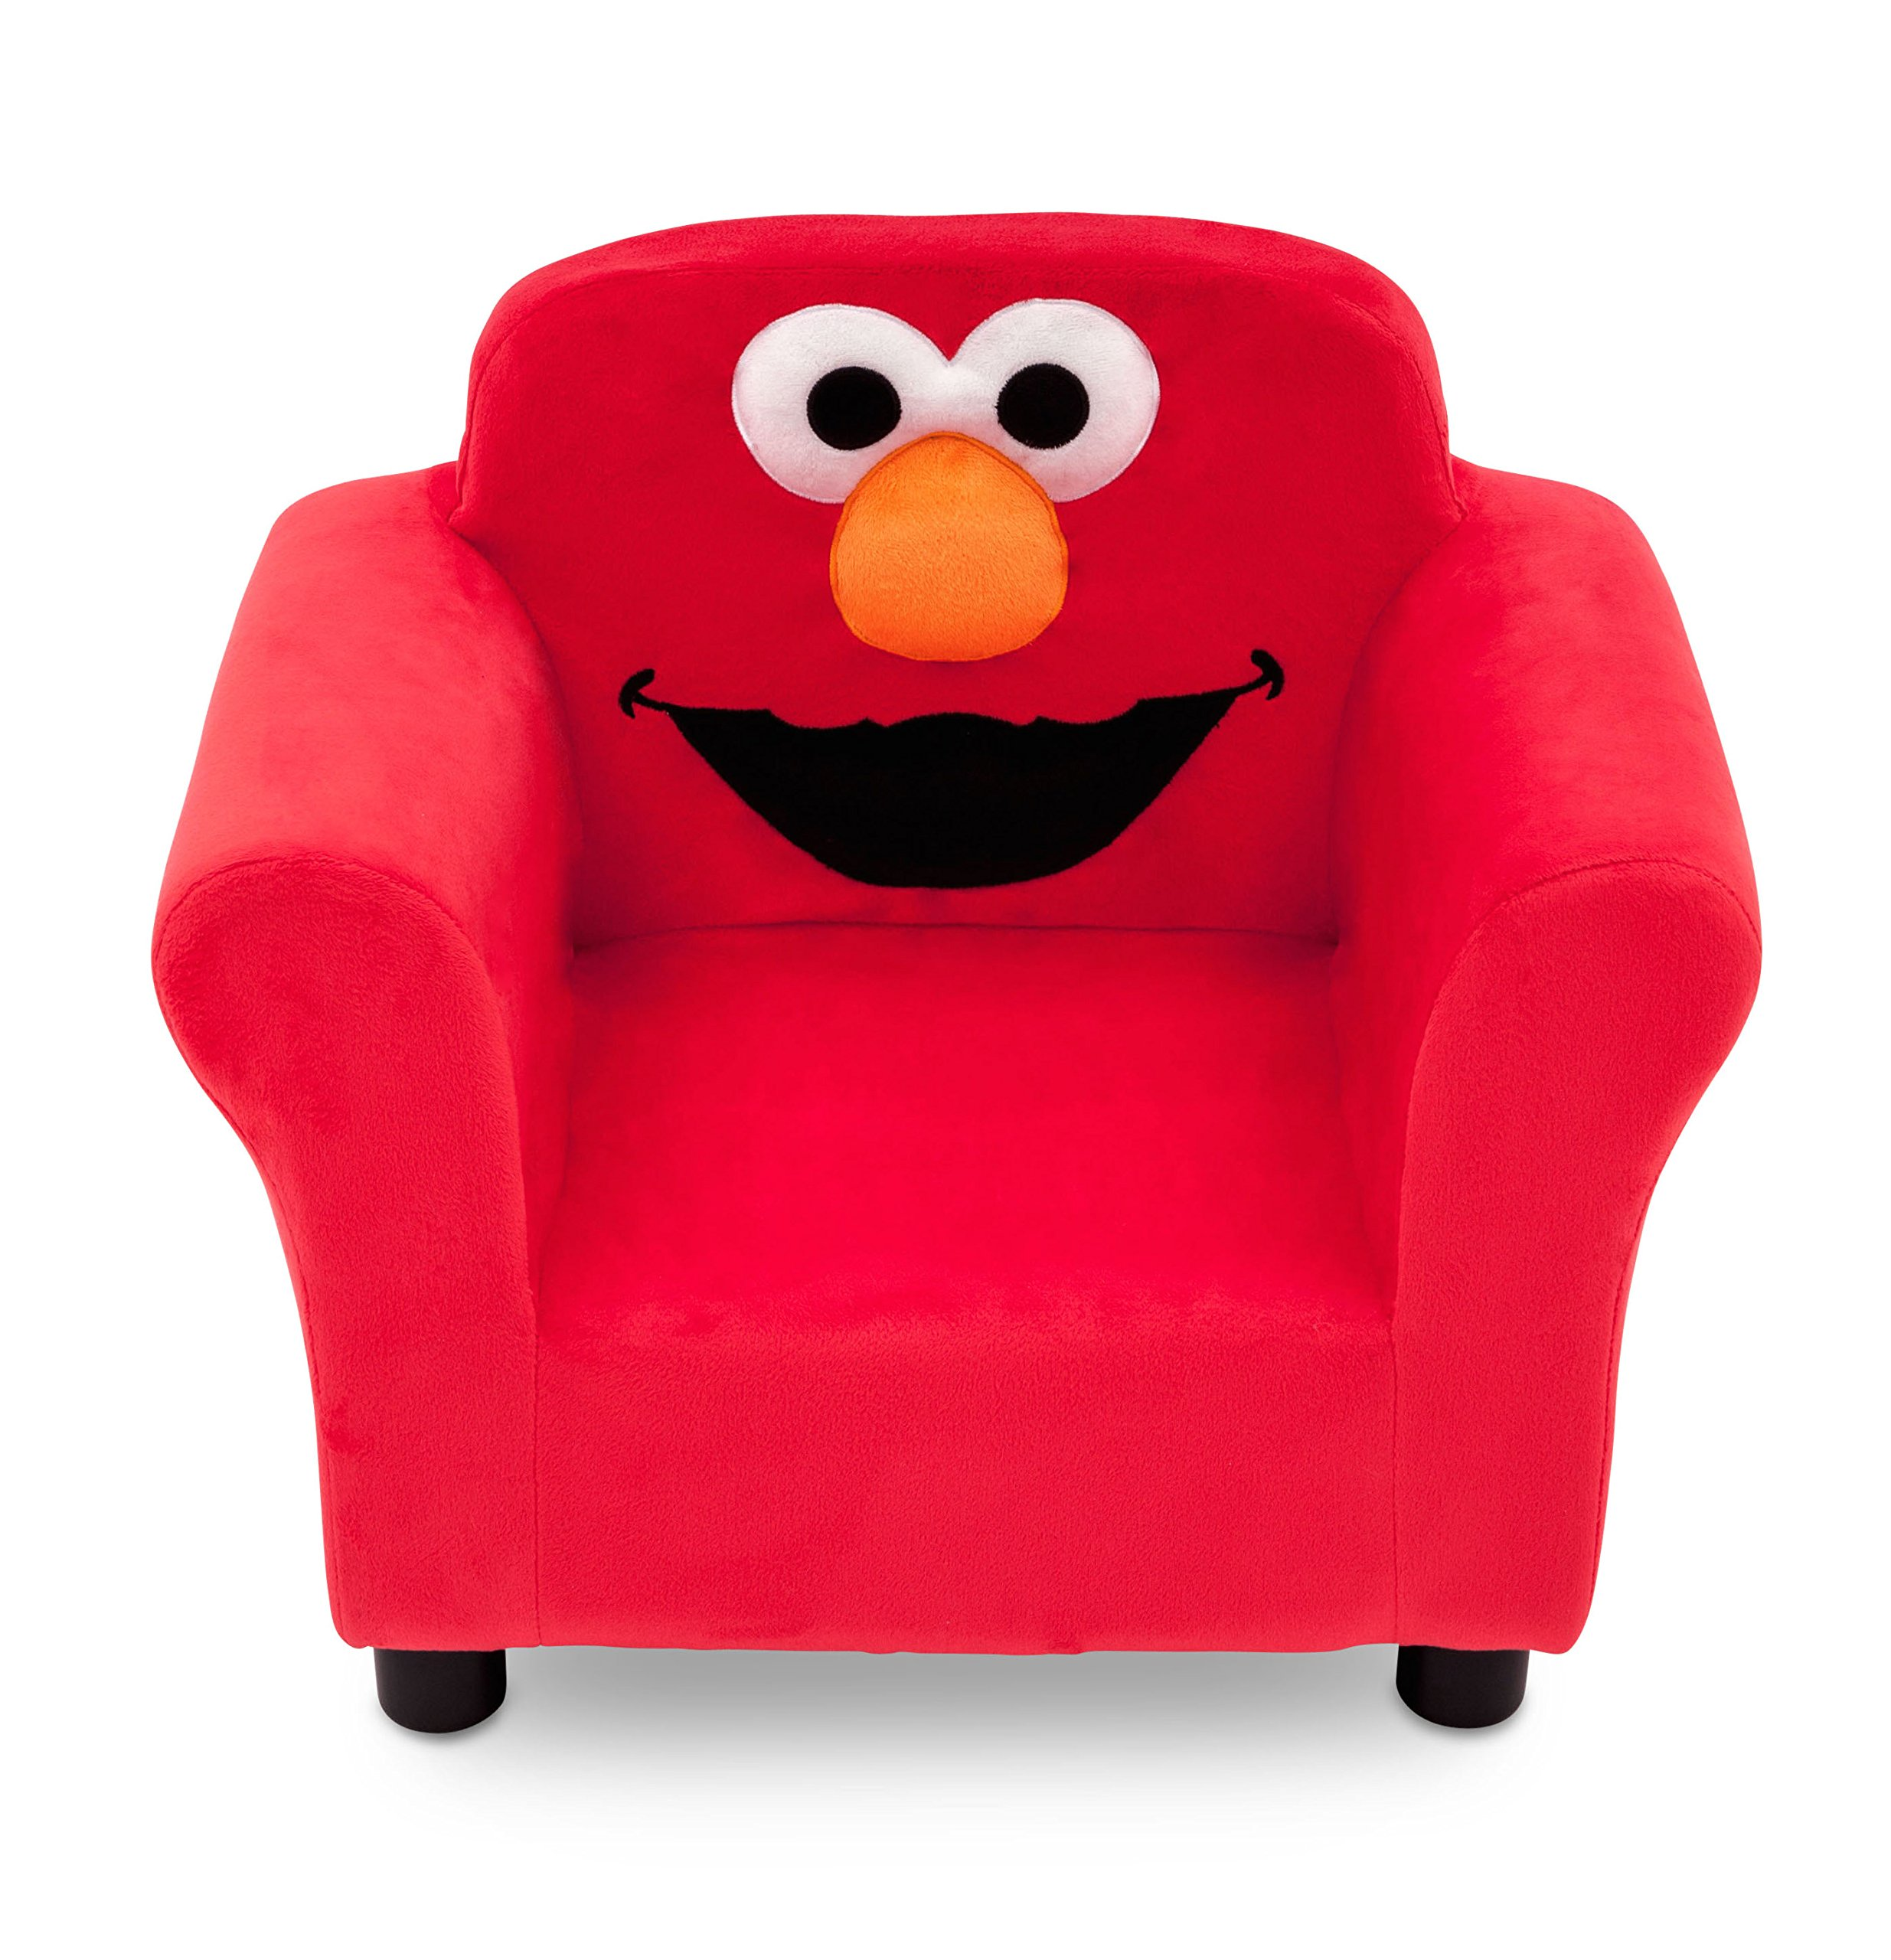 Sesame Street Elmo Upholstered Chair by Sesame Street